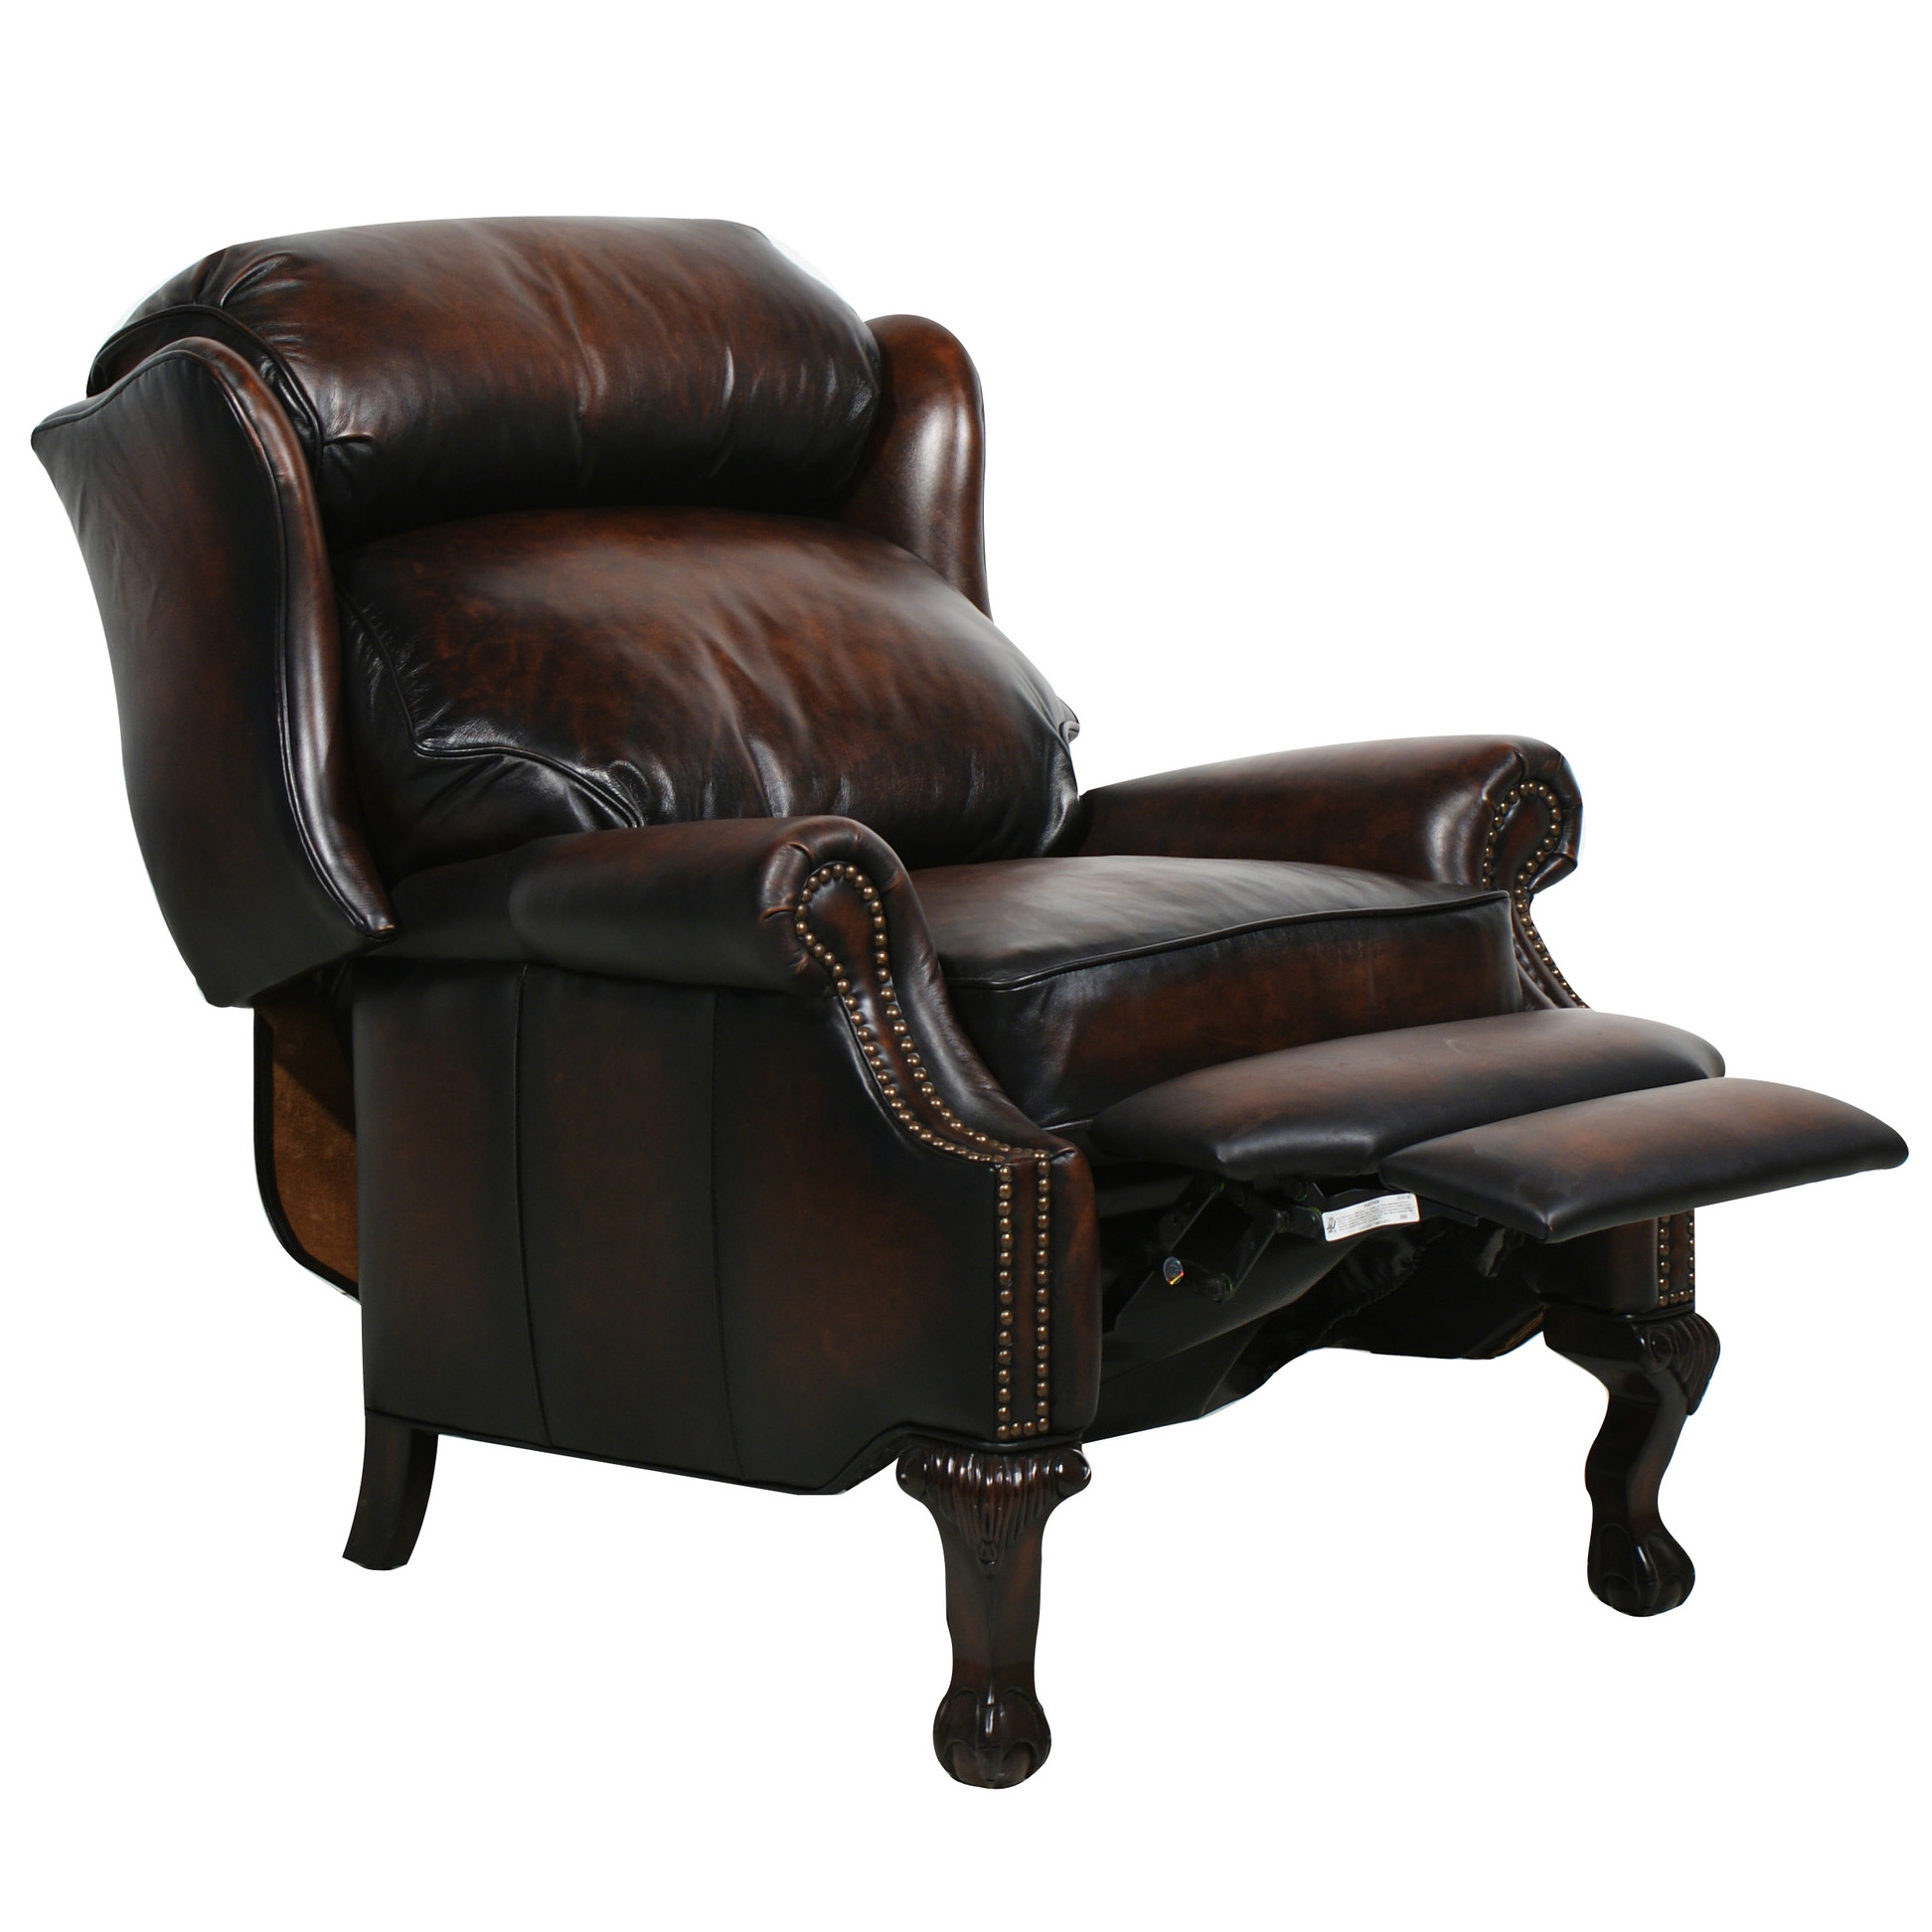 Barcalounger Danbury Ii Recliner Chair Leather Recliner